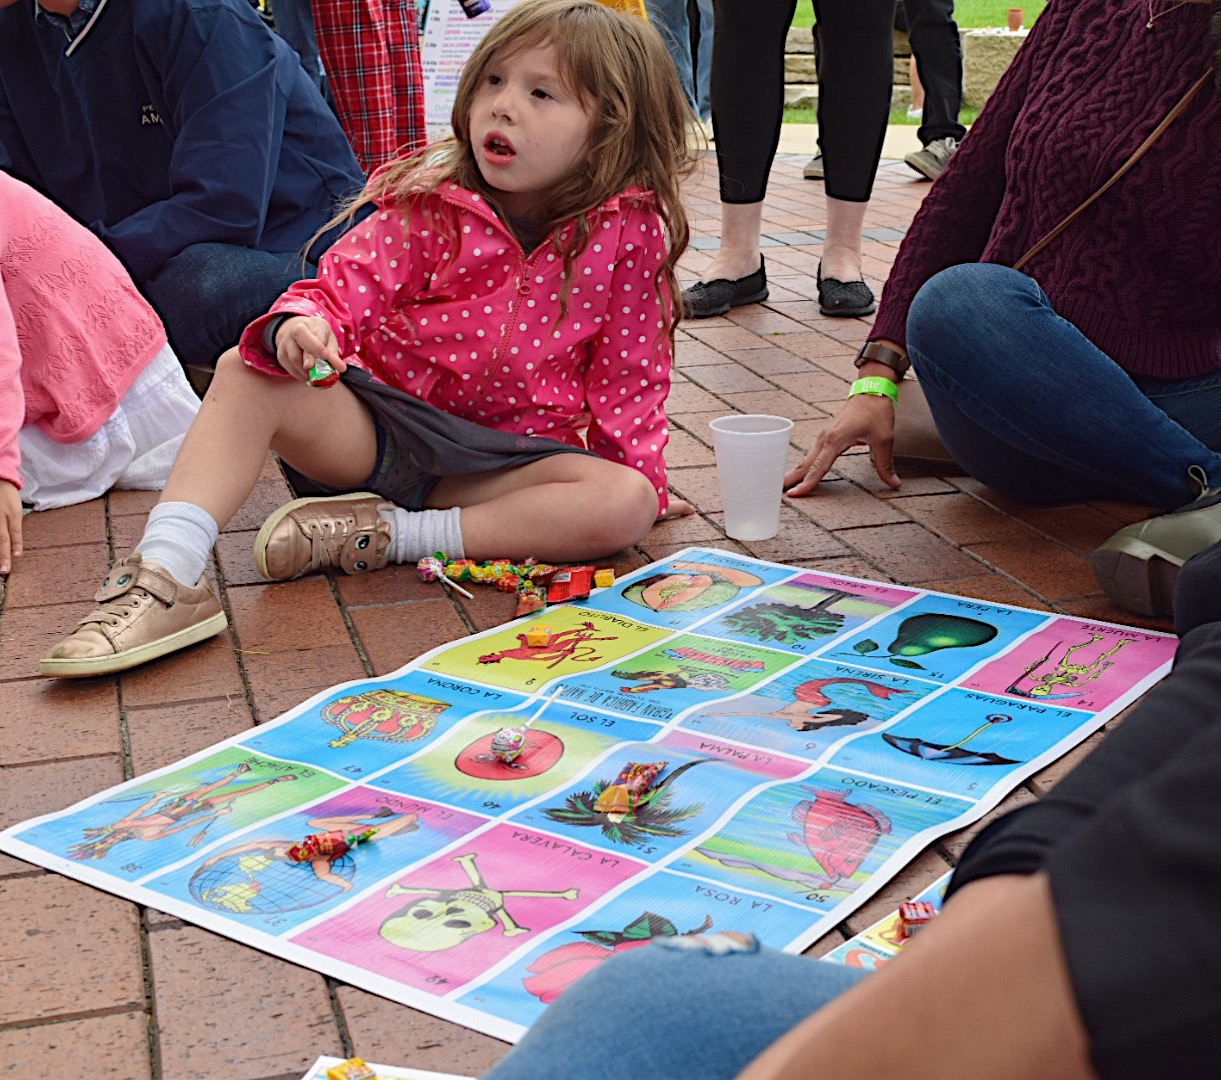 Young+girl+sits+with+candy+and+a+classic+board+game%2C+La+Loteria.